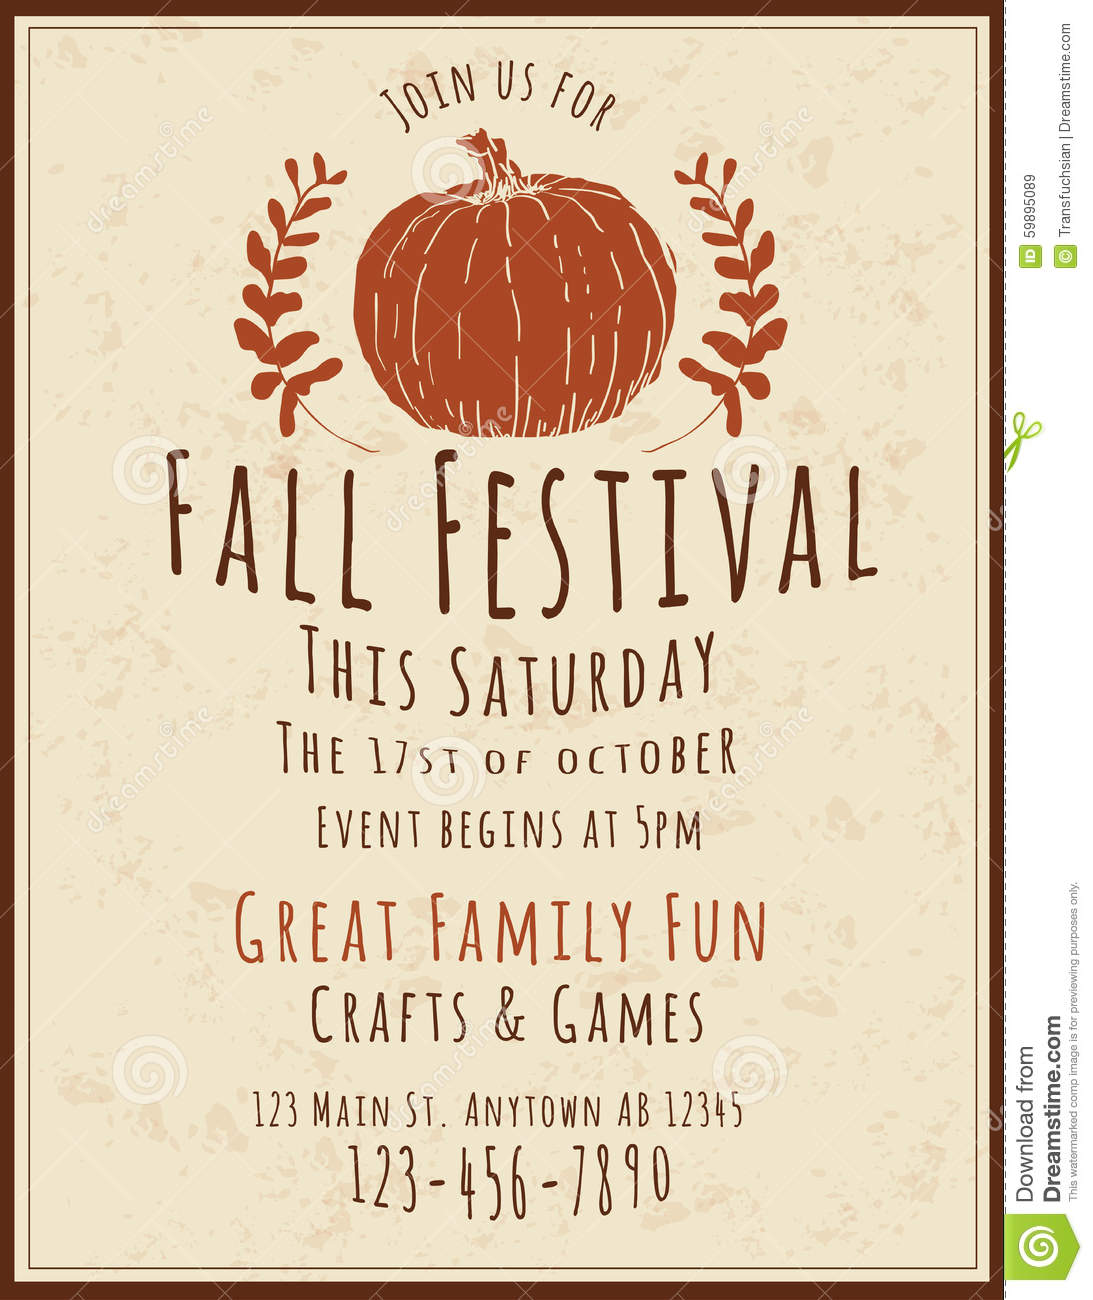 fall festival flyer template stock vector illustration of event flier 59895089. Black Bedroom Furniture Sets. Home Design Ideas